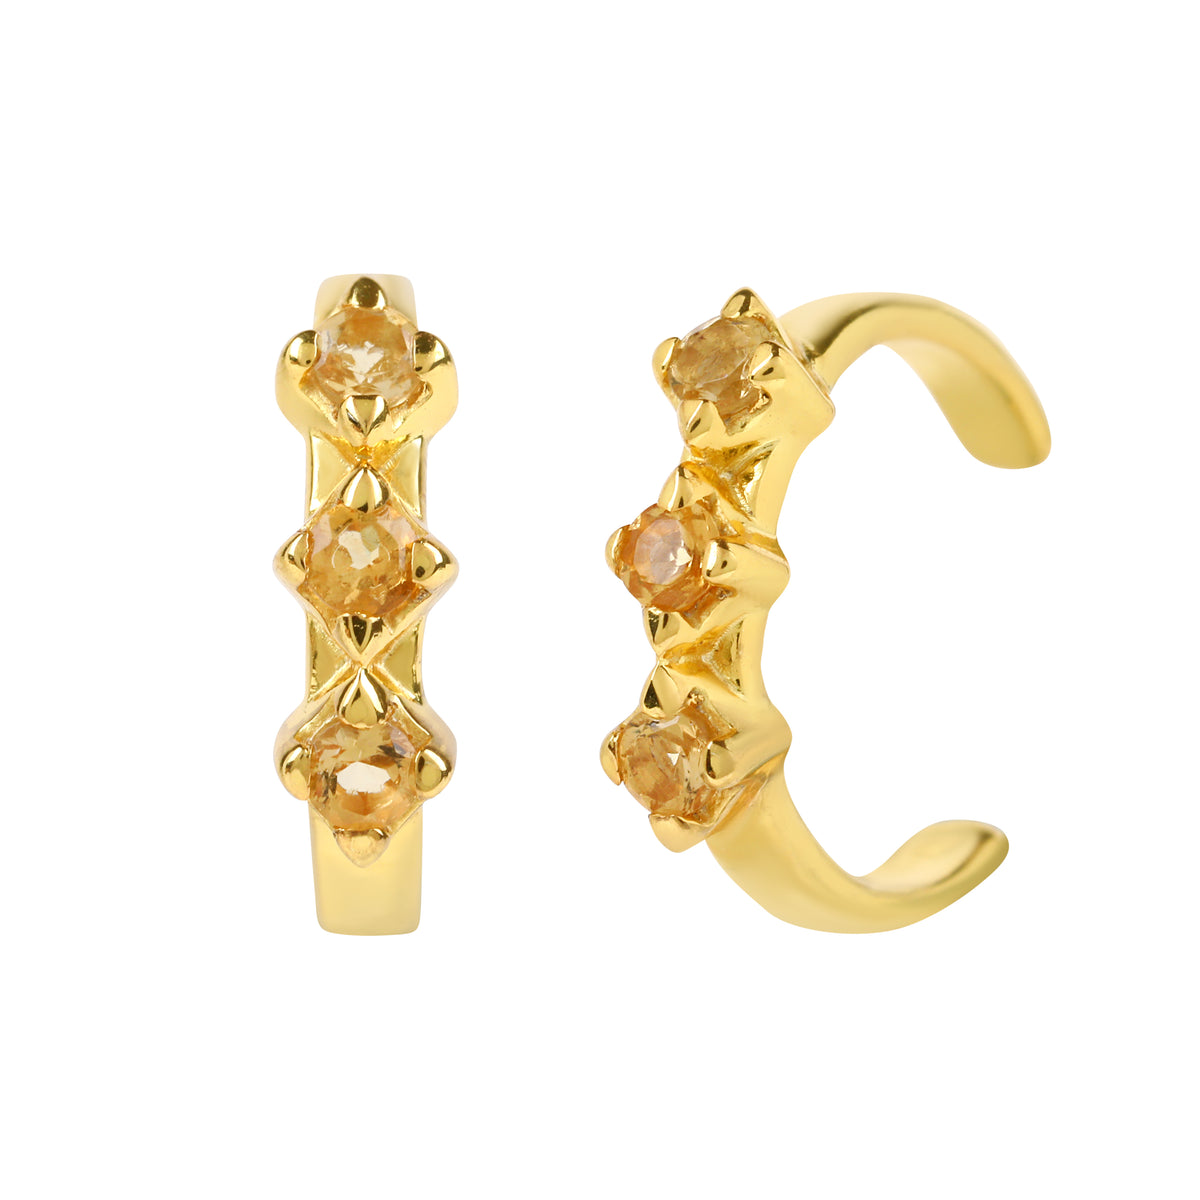 Reconceptions Ear Cuffs - Gold - Yellow